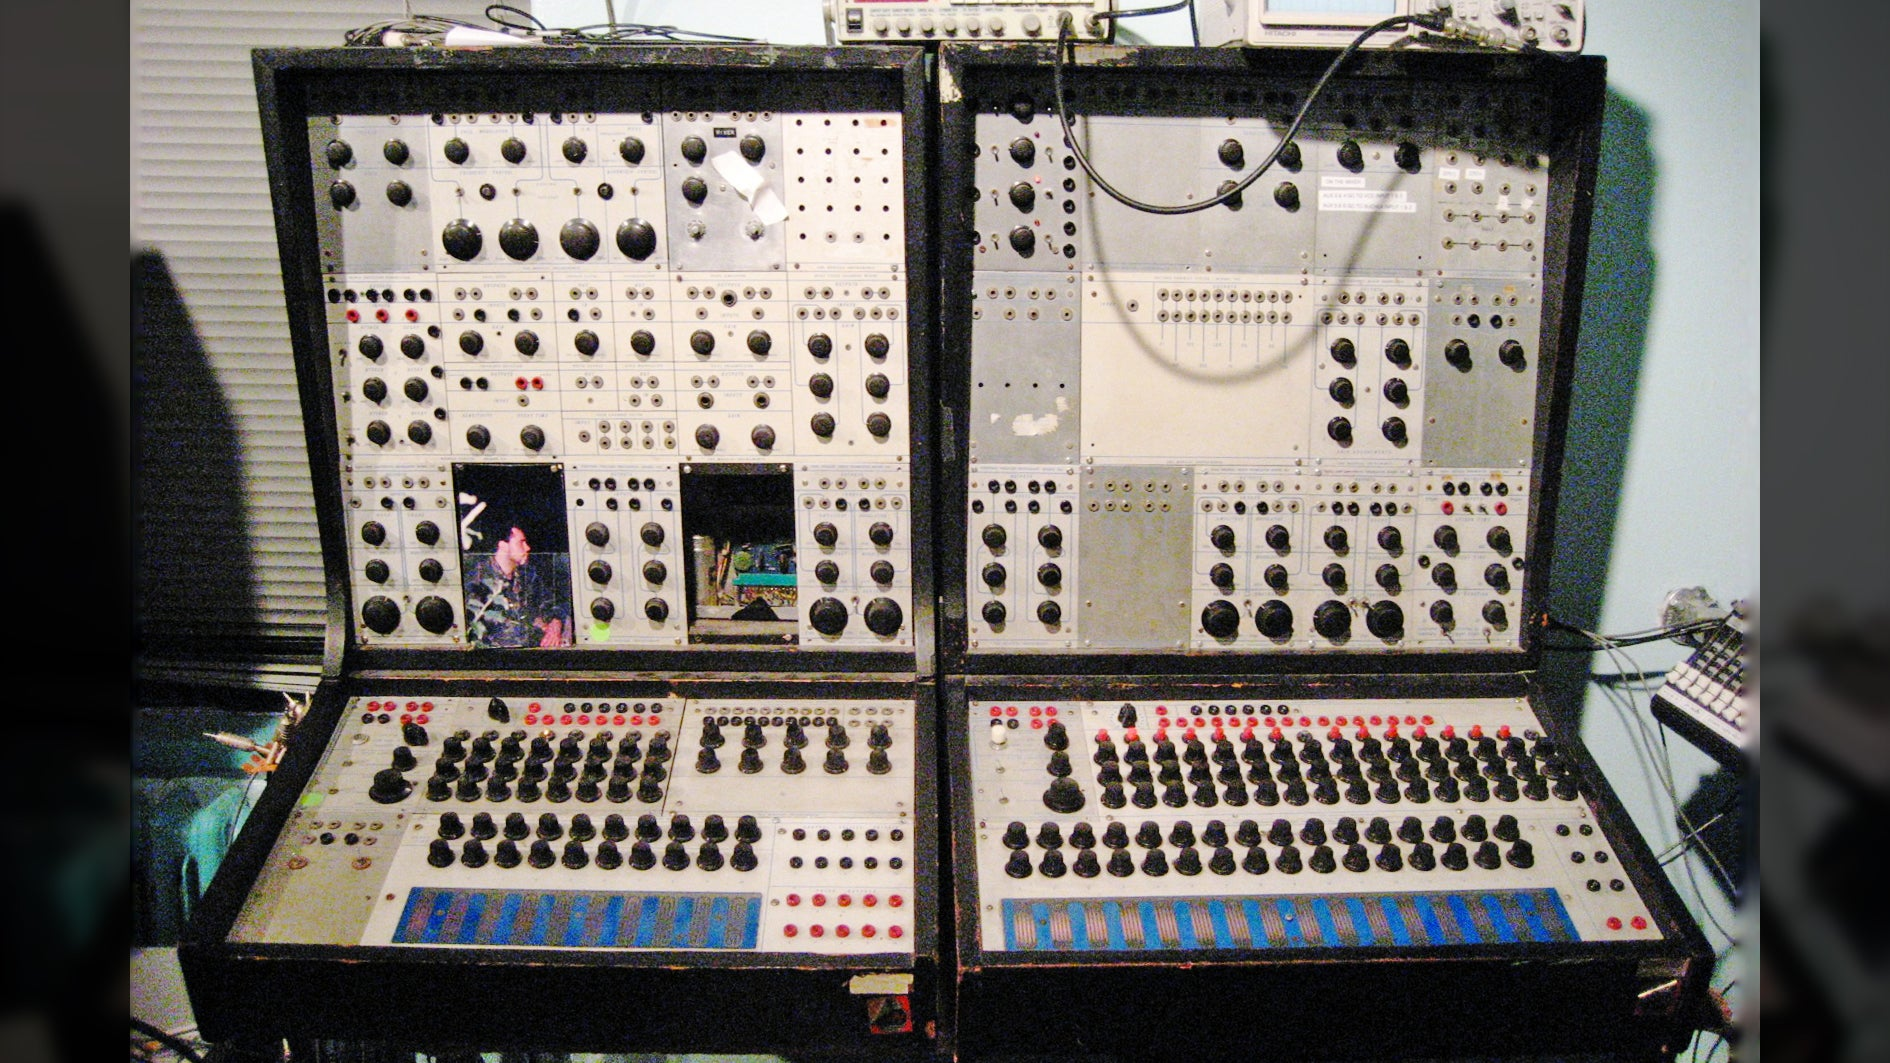 Man Restoring A Classic Synthesiser Goes On A 9-Hour Acid Trip After Accidentally Touching LSD-Covered Knob